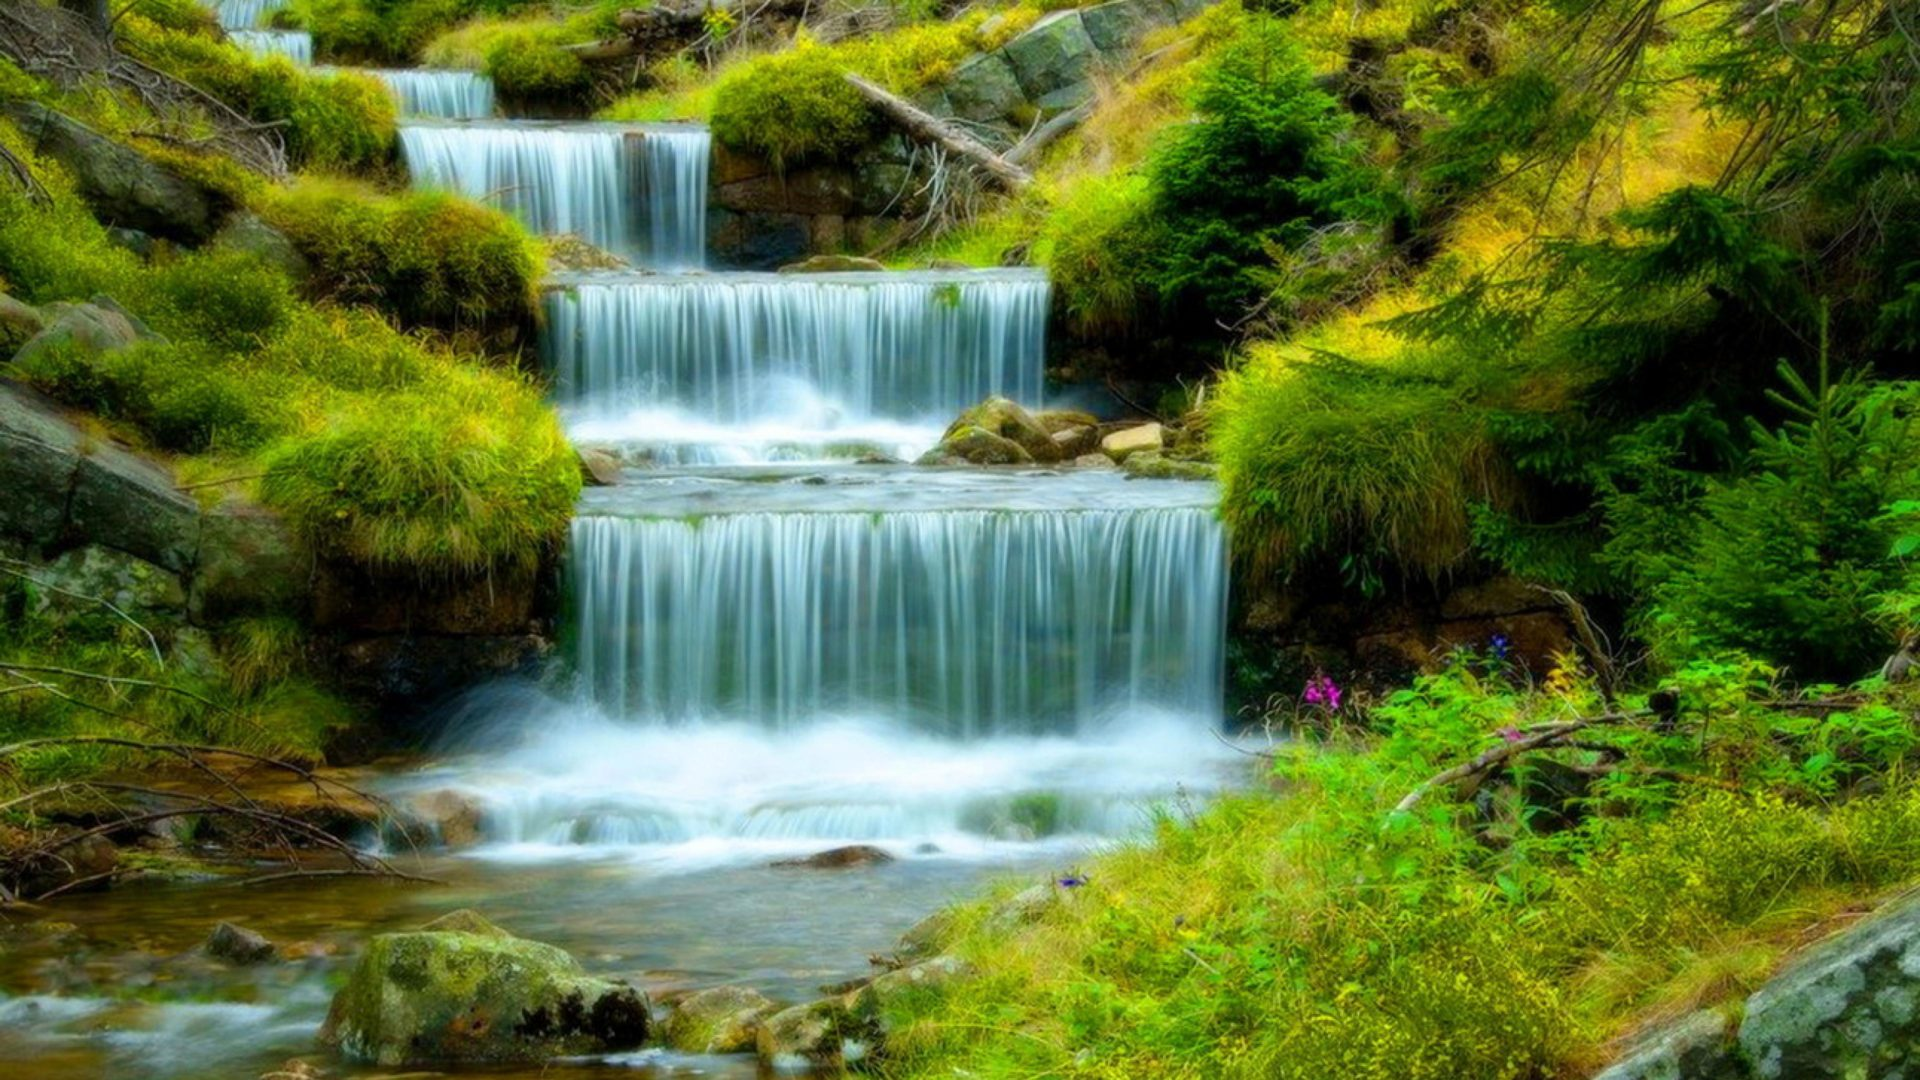 Fall Wallpaper Hd Iphone River With Cascading Waterfall Water Stones Green Grass